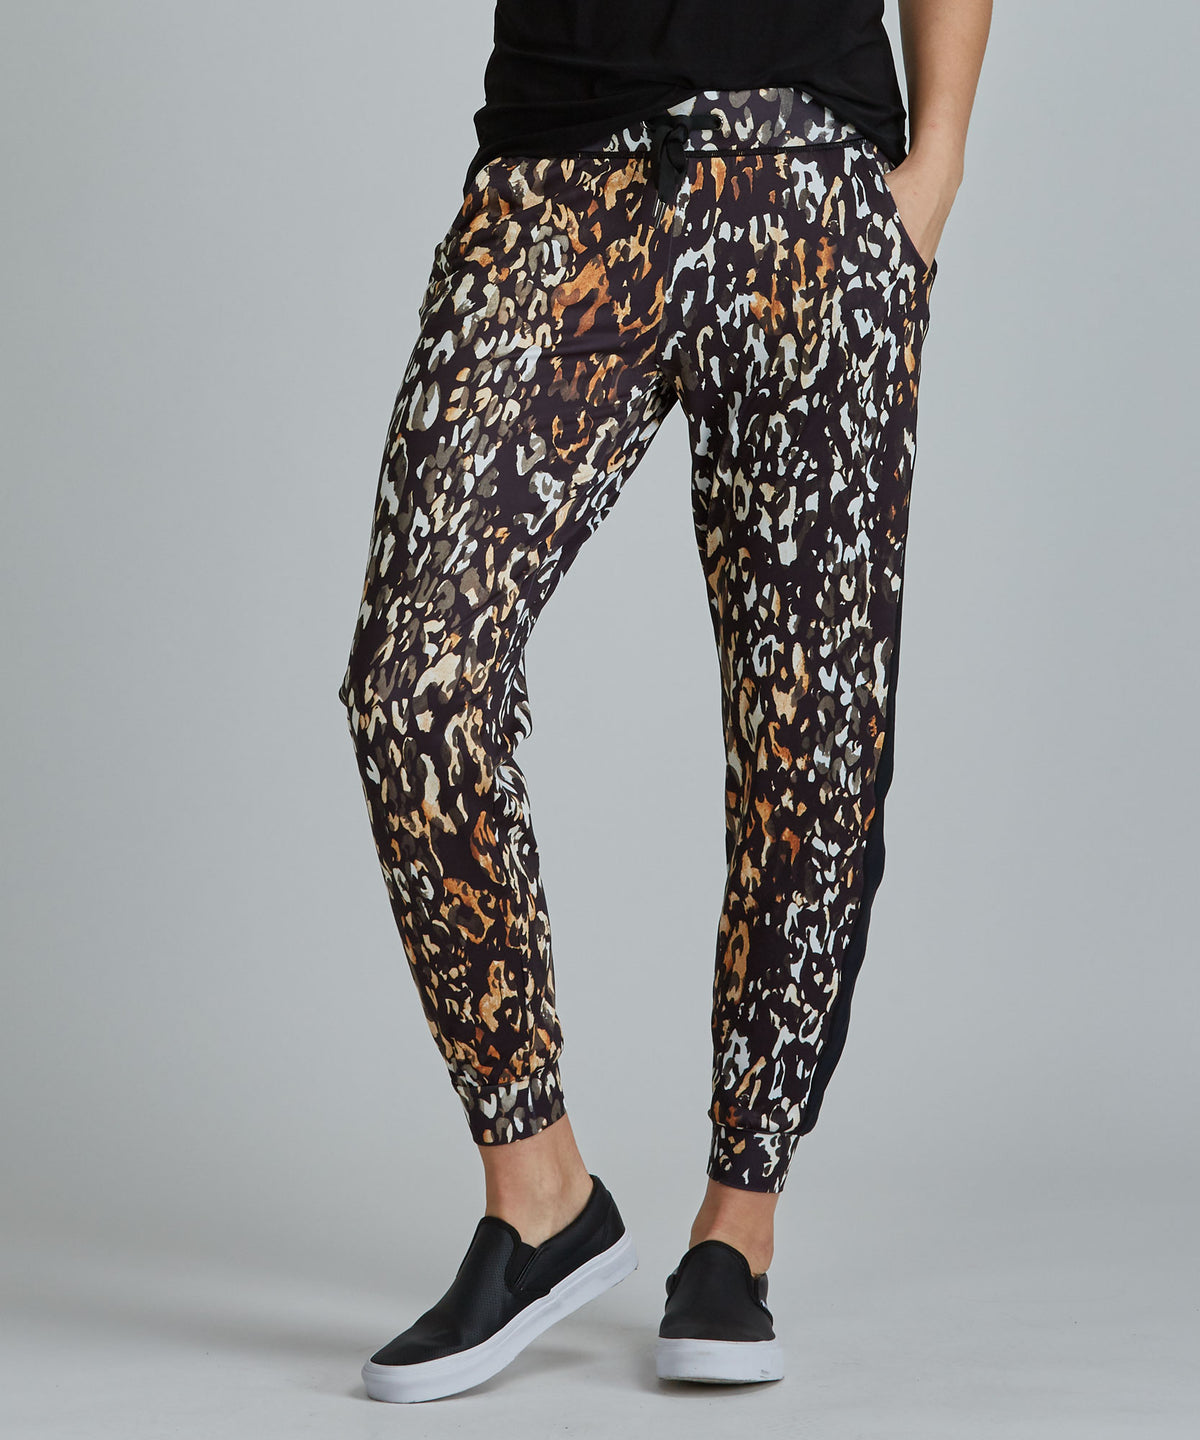 Urban Track Pant - Ombre Cheetah Ombre Cheetah Urban Track Pant - Women's Activewear Pant by PRISMSPORT